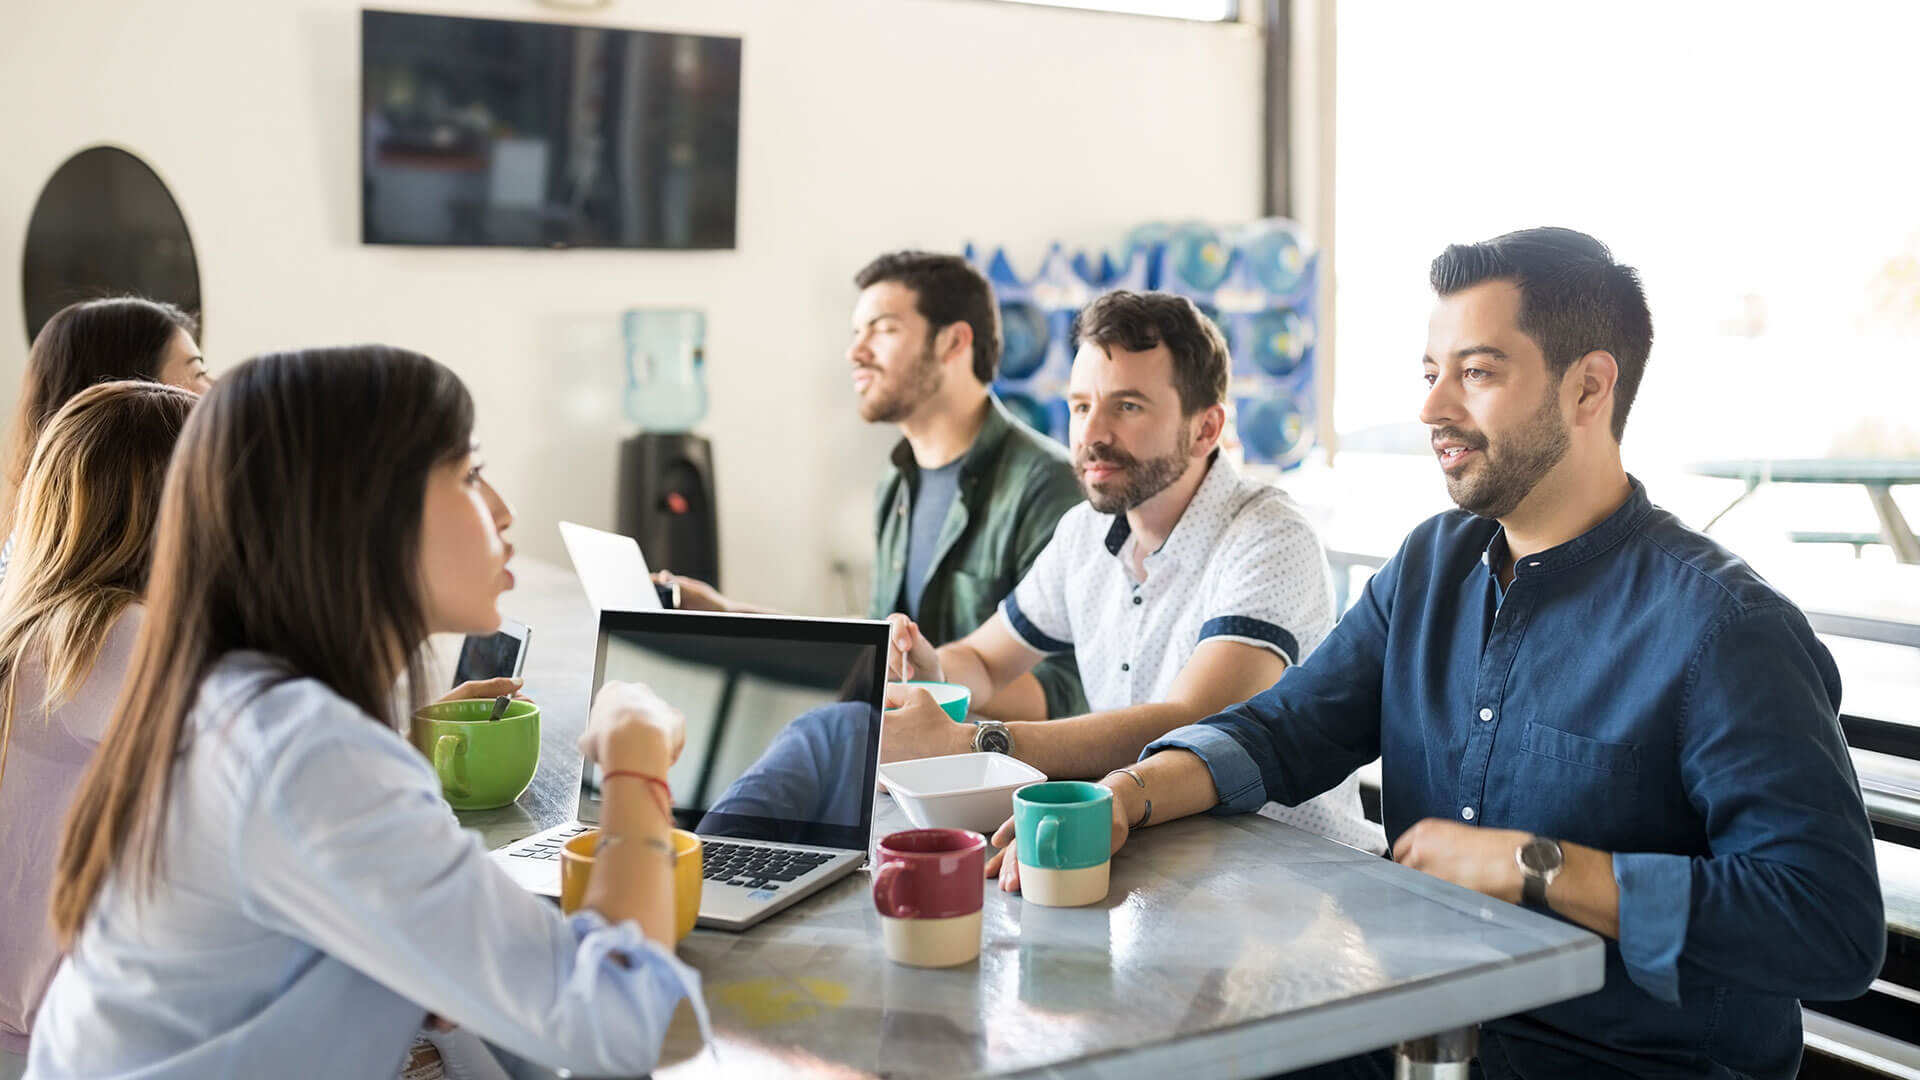 Team culture in the workplace: A group of young professionals sit in discussion around a computer desk